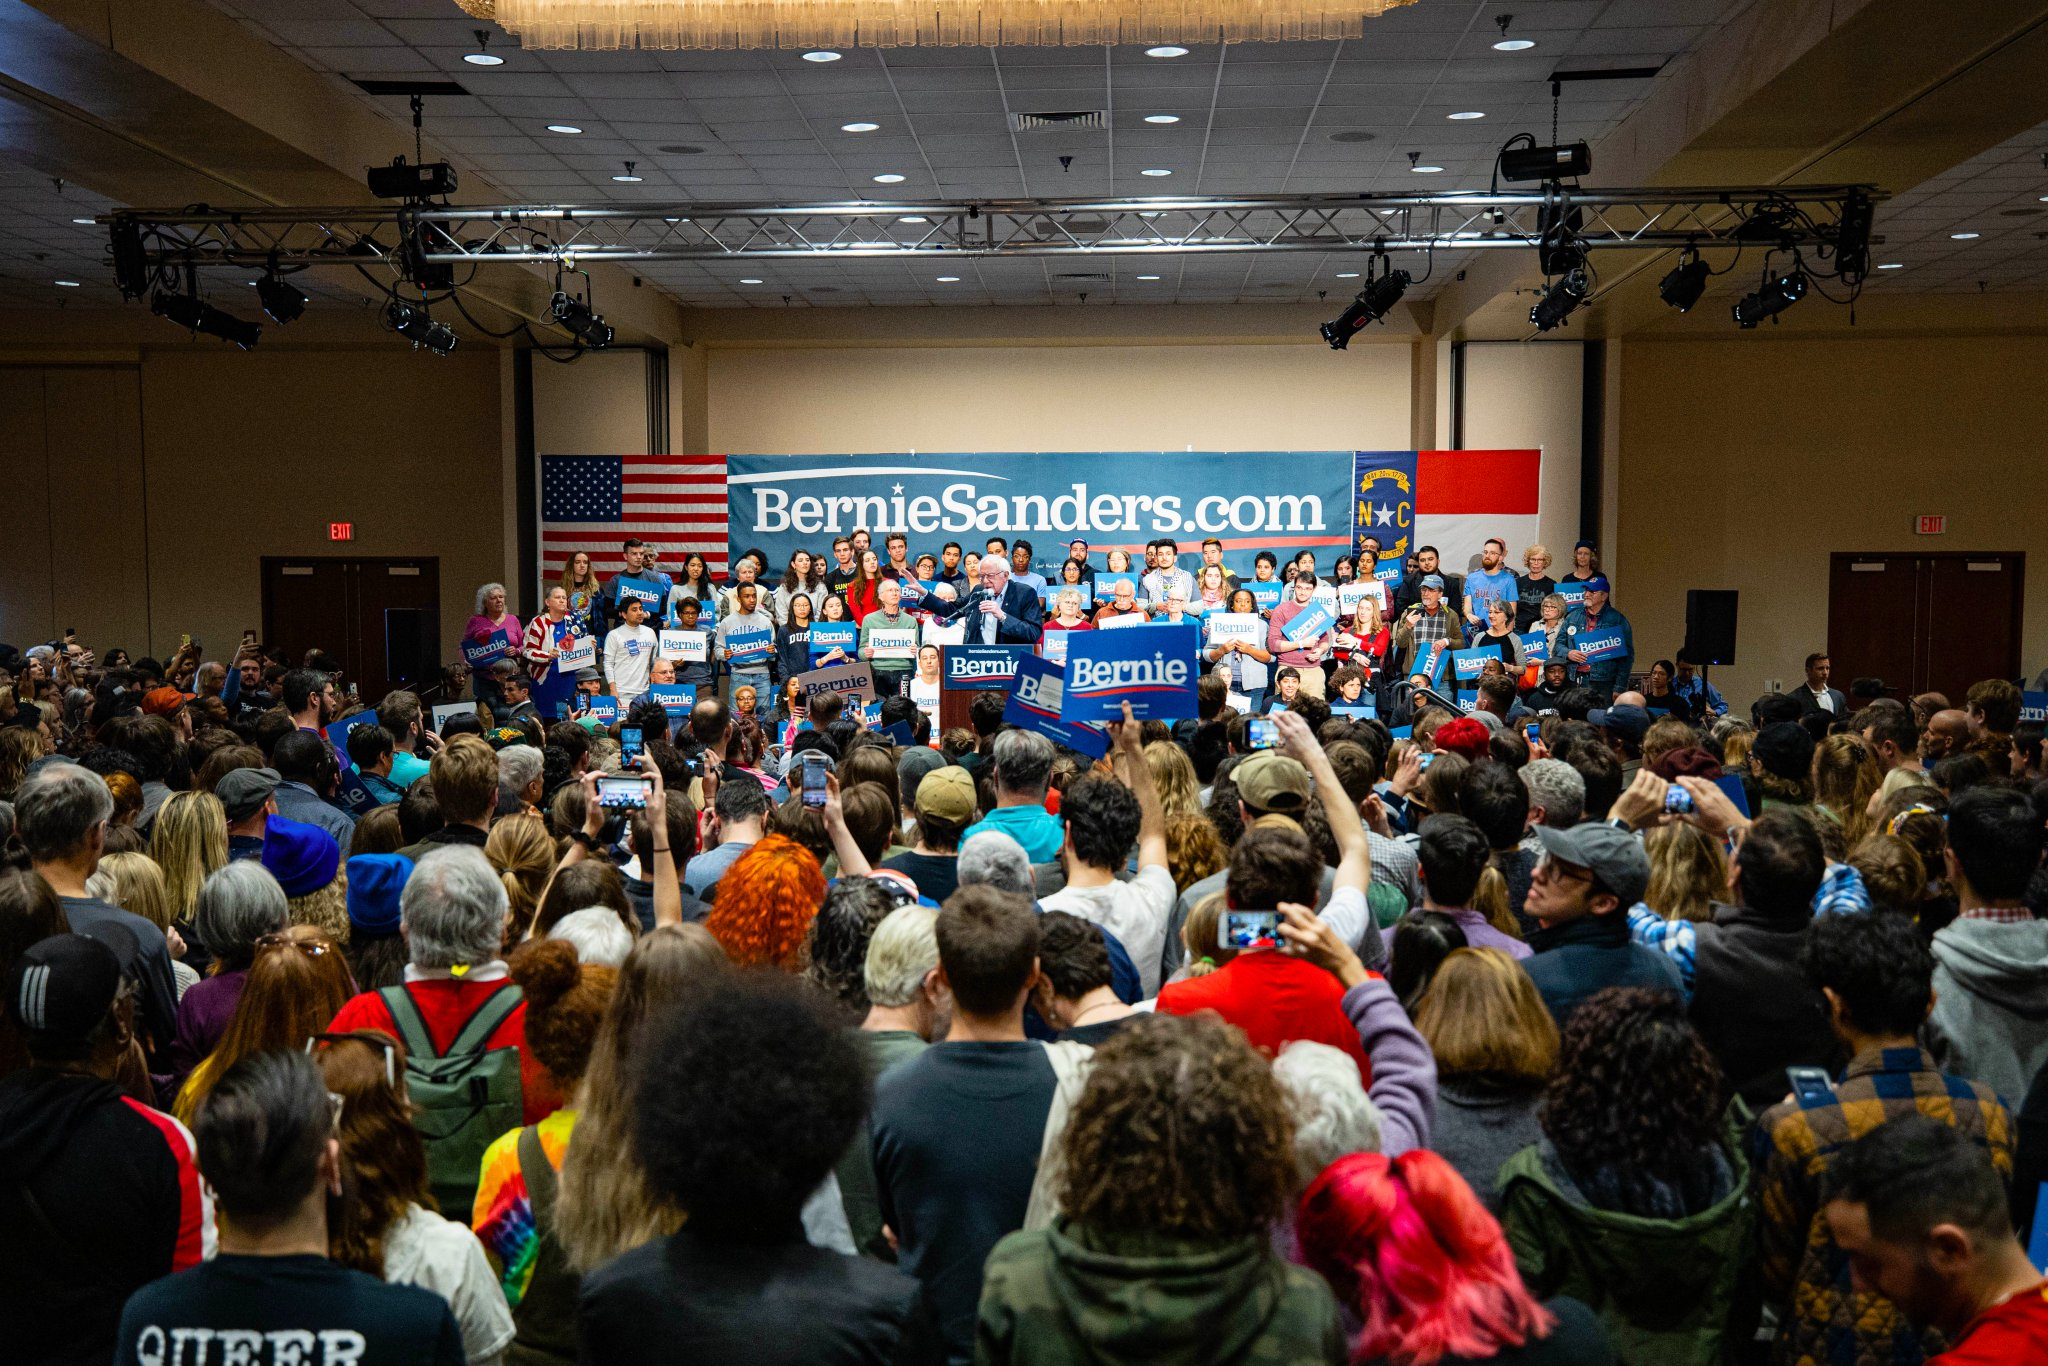 Yesterday, over 10,000 people joined us between Durham, Charlotte, and Mesquite. That's got to make the billionaire class and corporate elites of this country very, very nervous. Let's keep up the momentum! https://t.co/ITajCHg5Sp